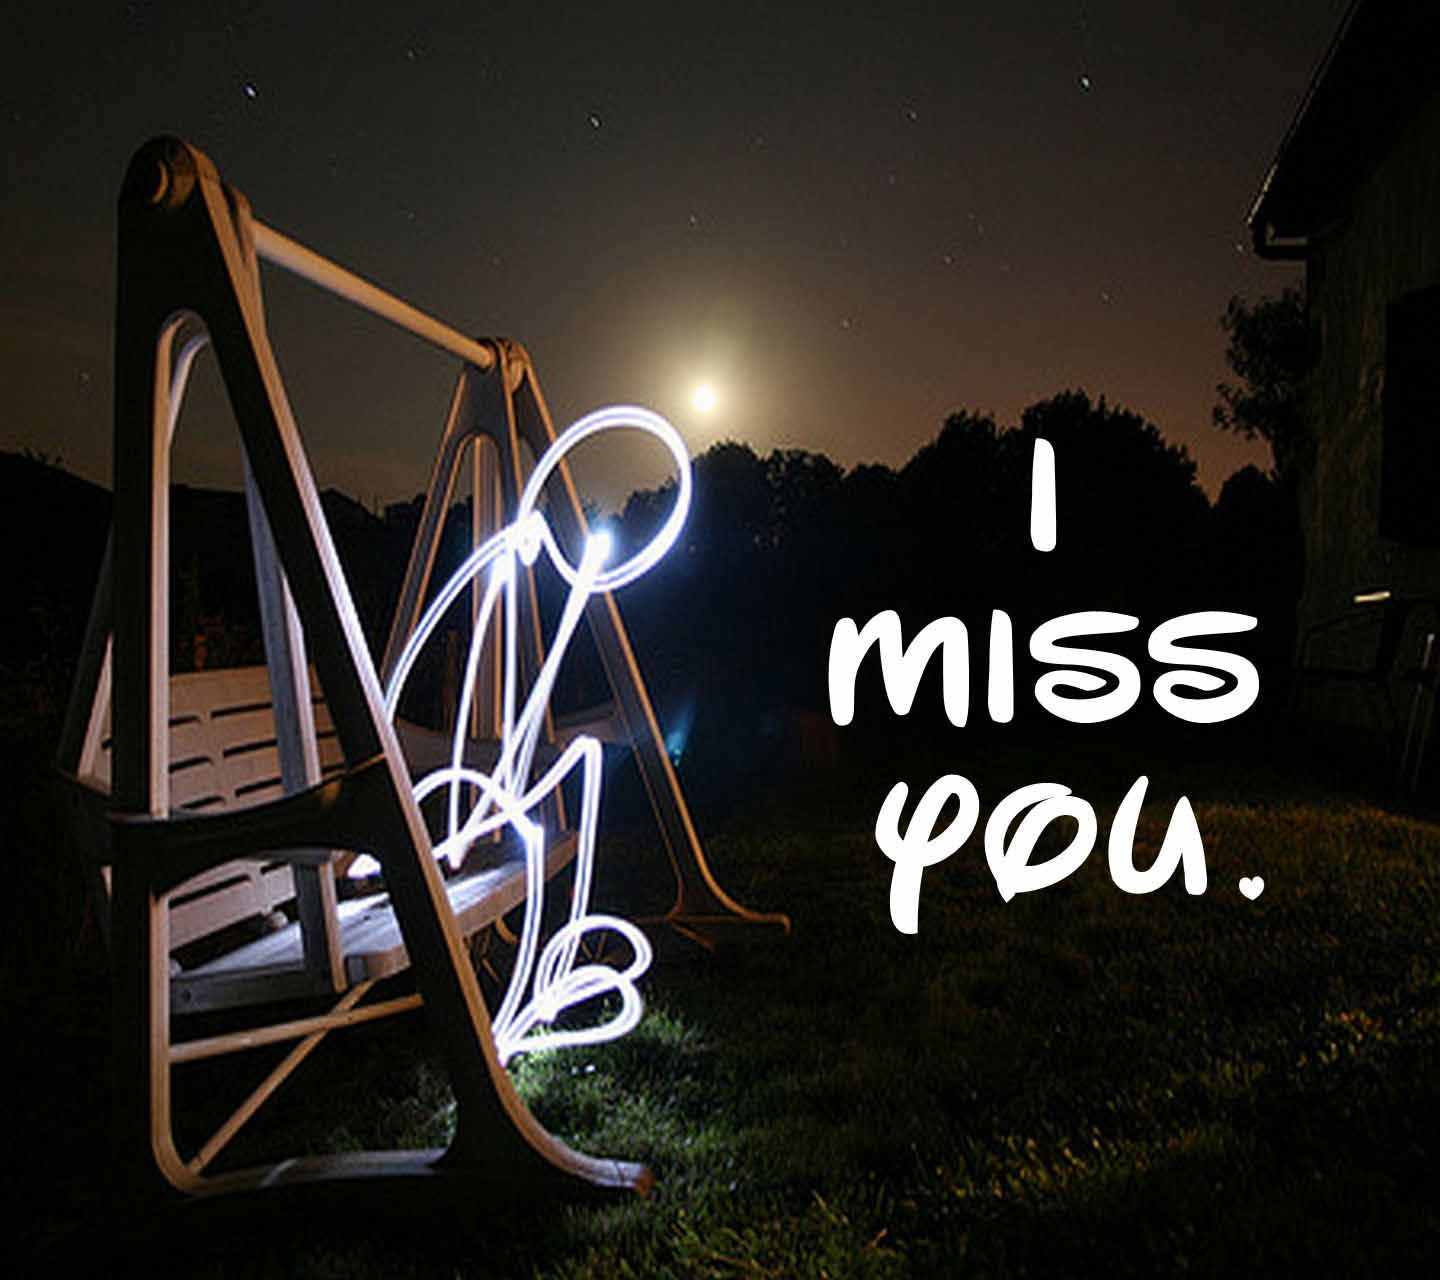 I Miss You Wallpapers Wallpaper Cave I Miss You Wallpaper Miss You Images Miss You Mom